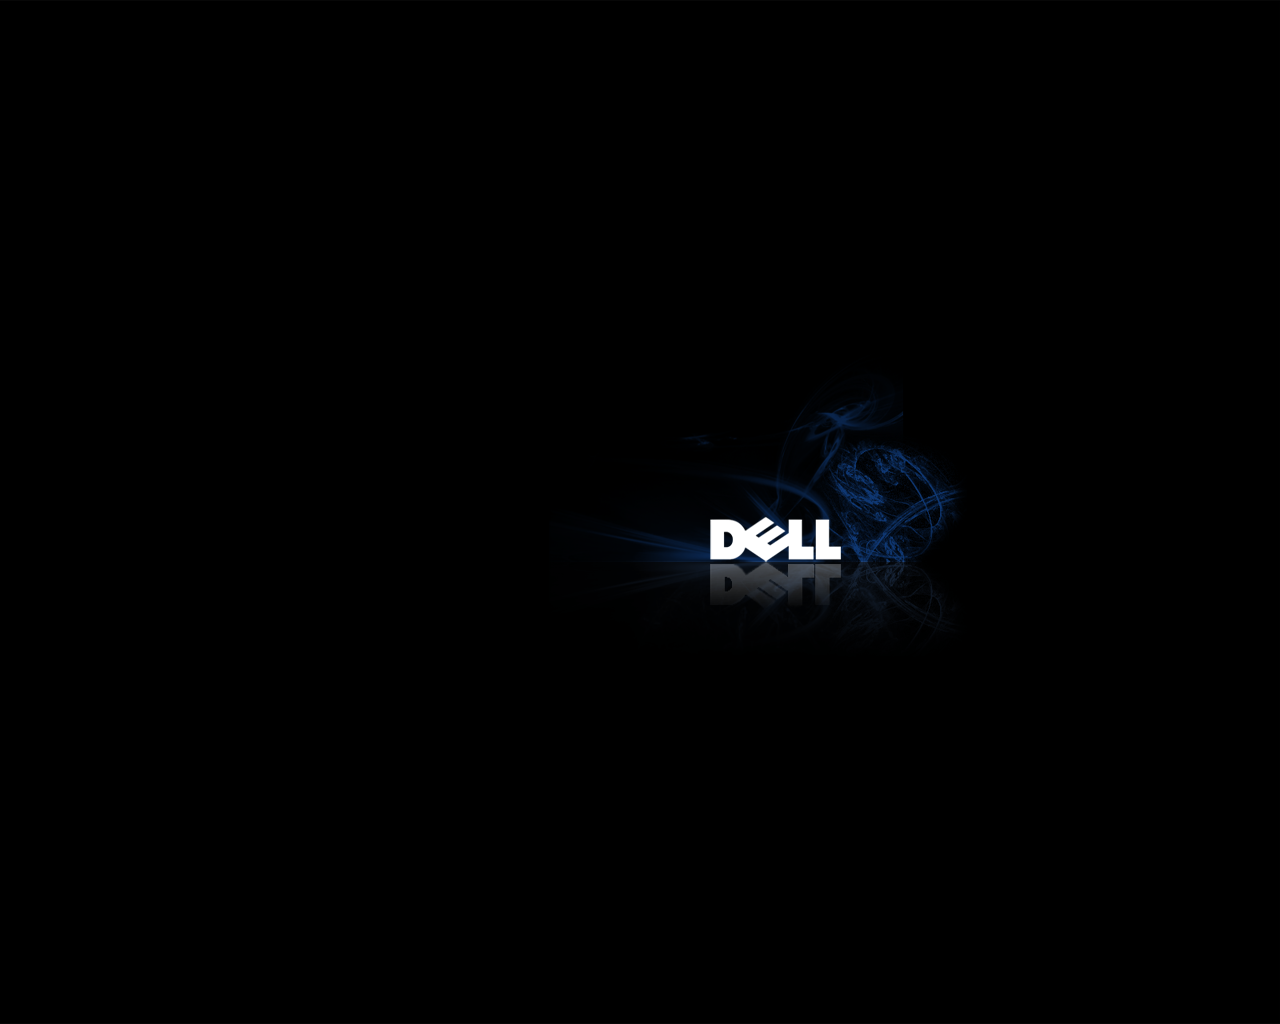 Dell Widescreen Wallpapers Dell Wallpapers Best Desktop Backgrounds With High D Cool Desktop Backgrounds Backgrounds Desktop Desktop Wallpapers Backgrounds